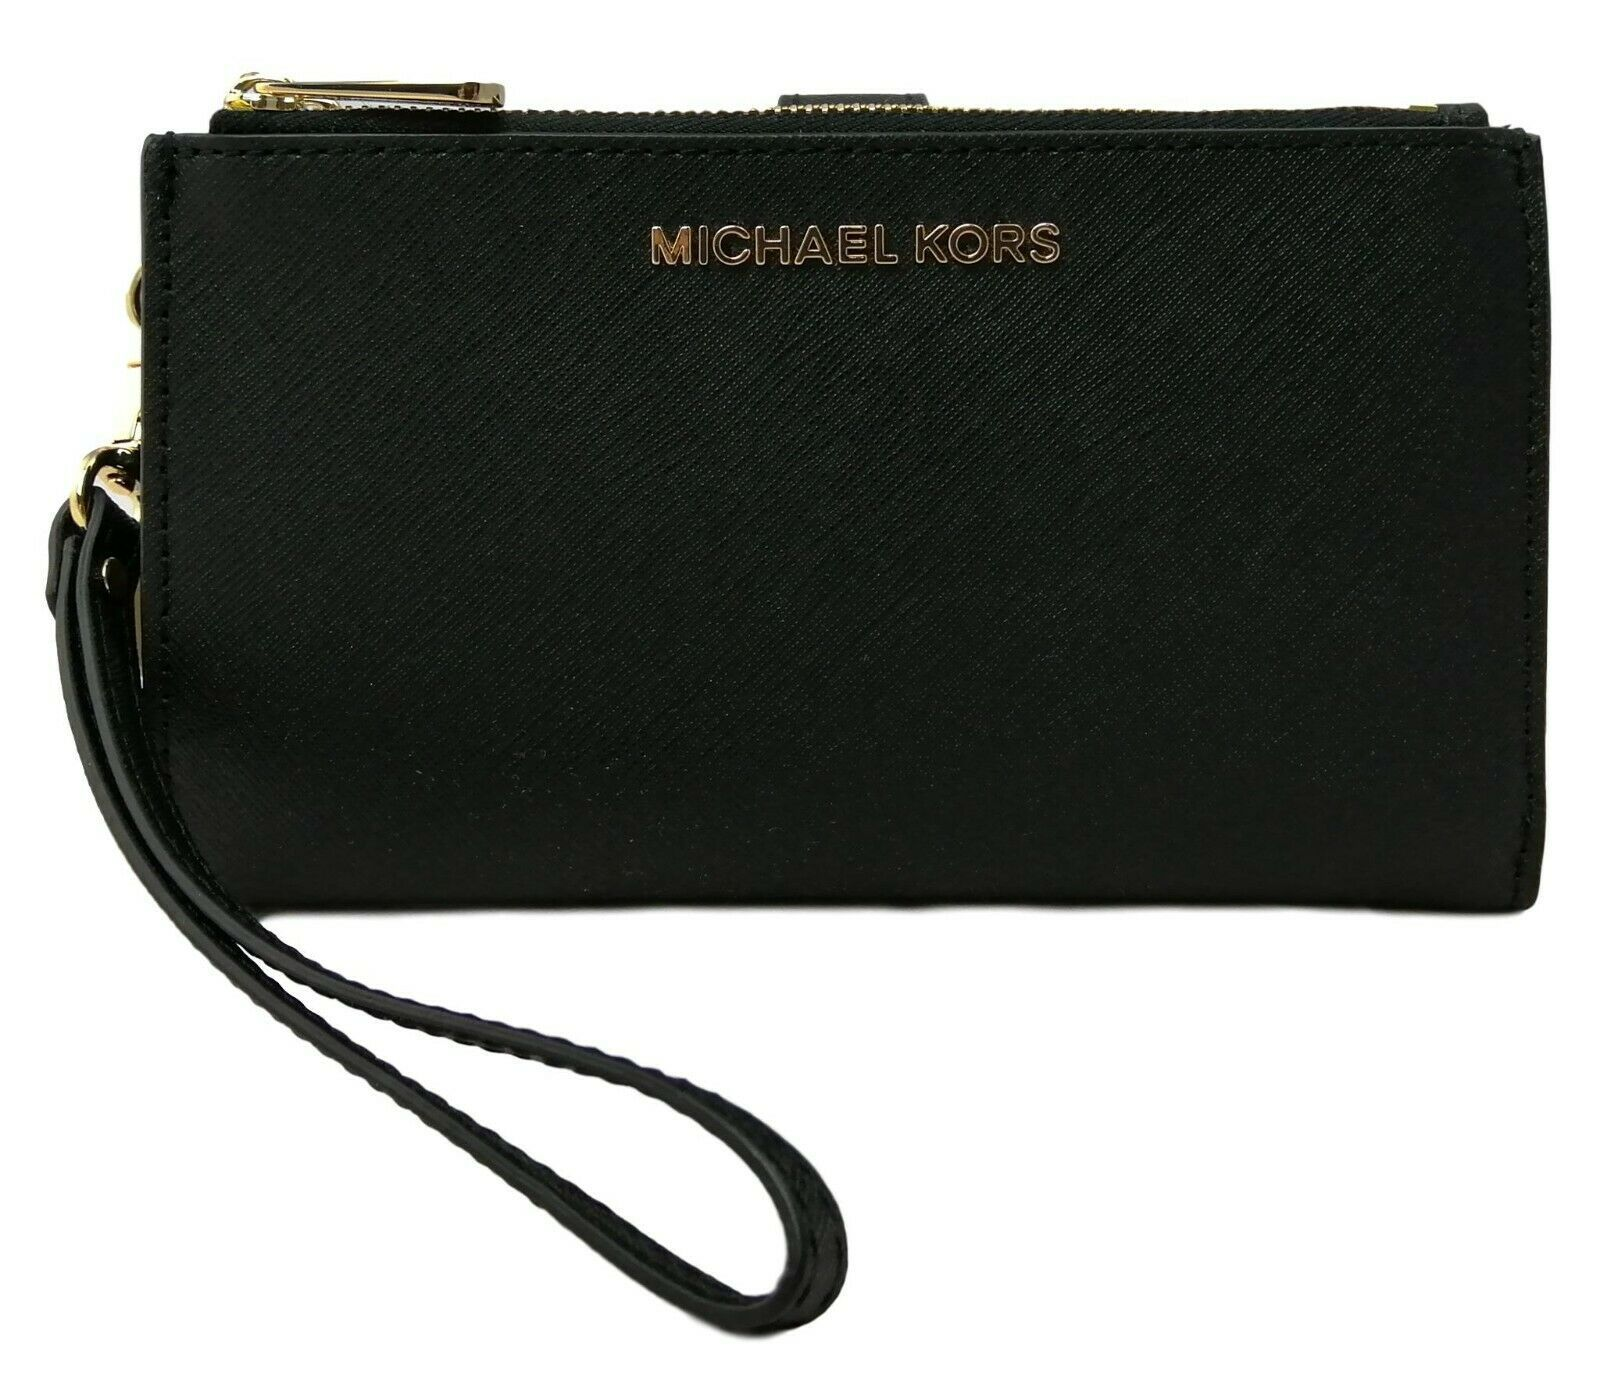 Primary image for Michael Kors Purse Bifold Wallet Wristlet Black Saffiano Leather